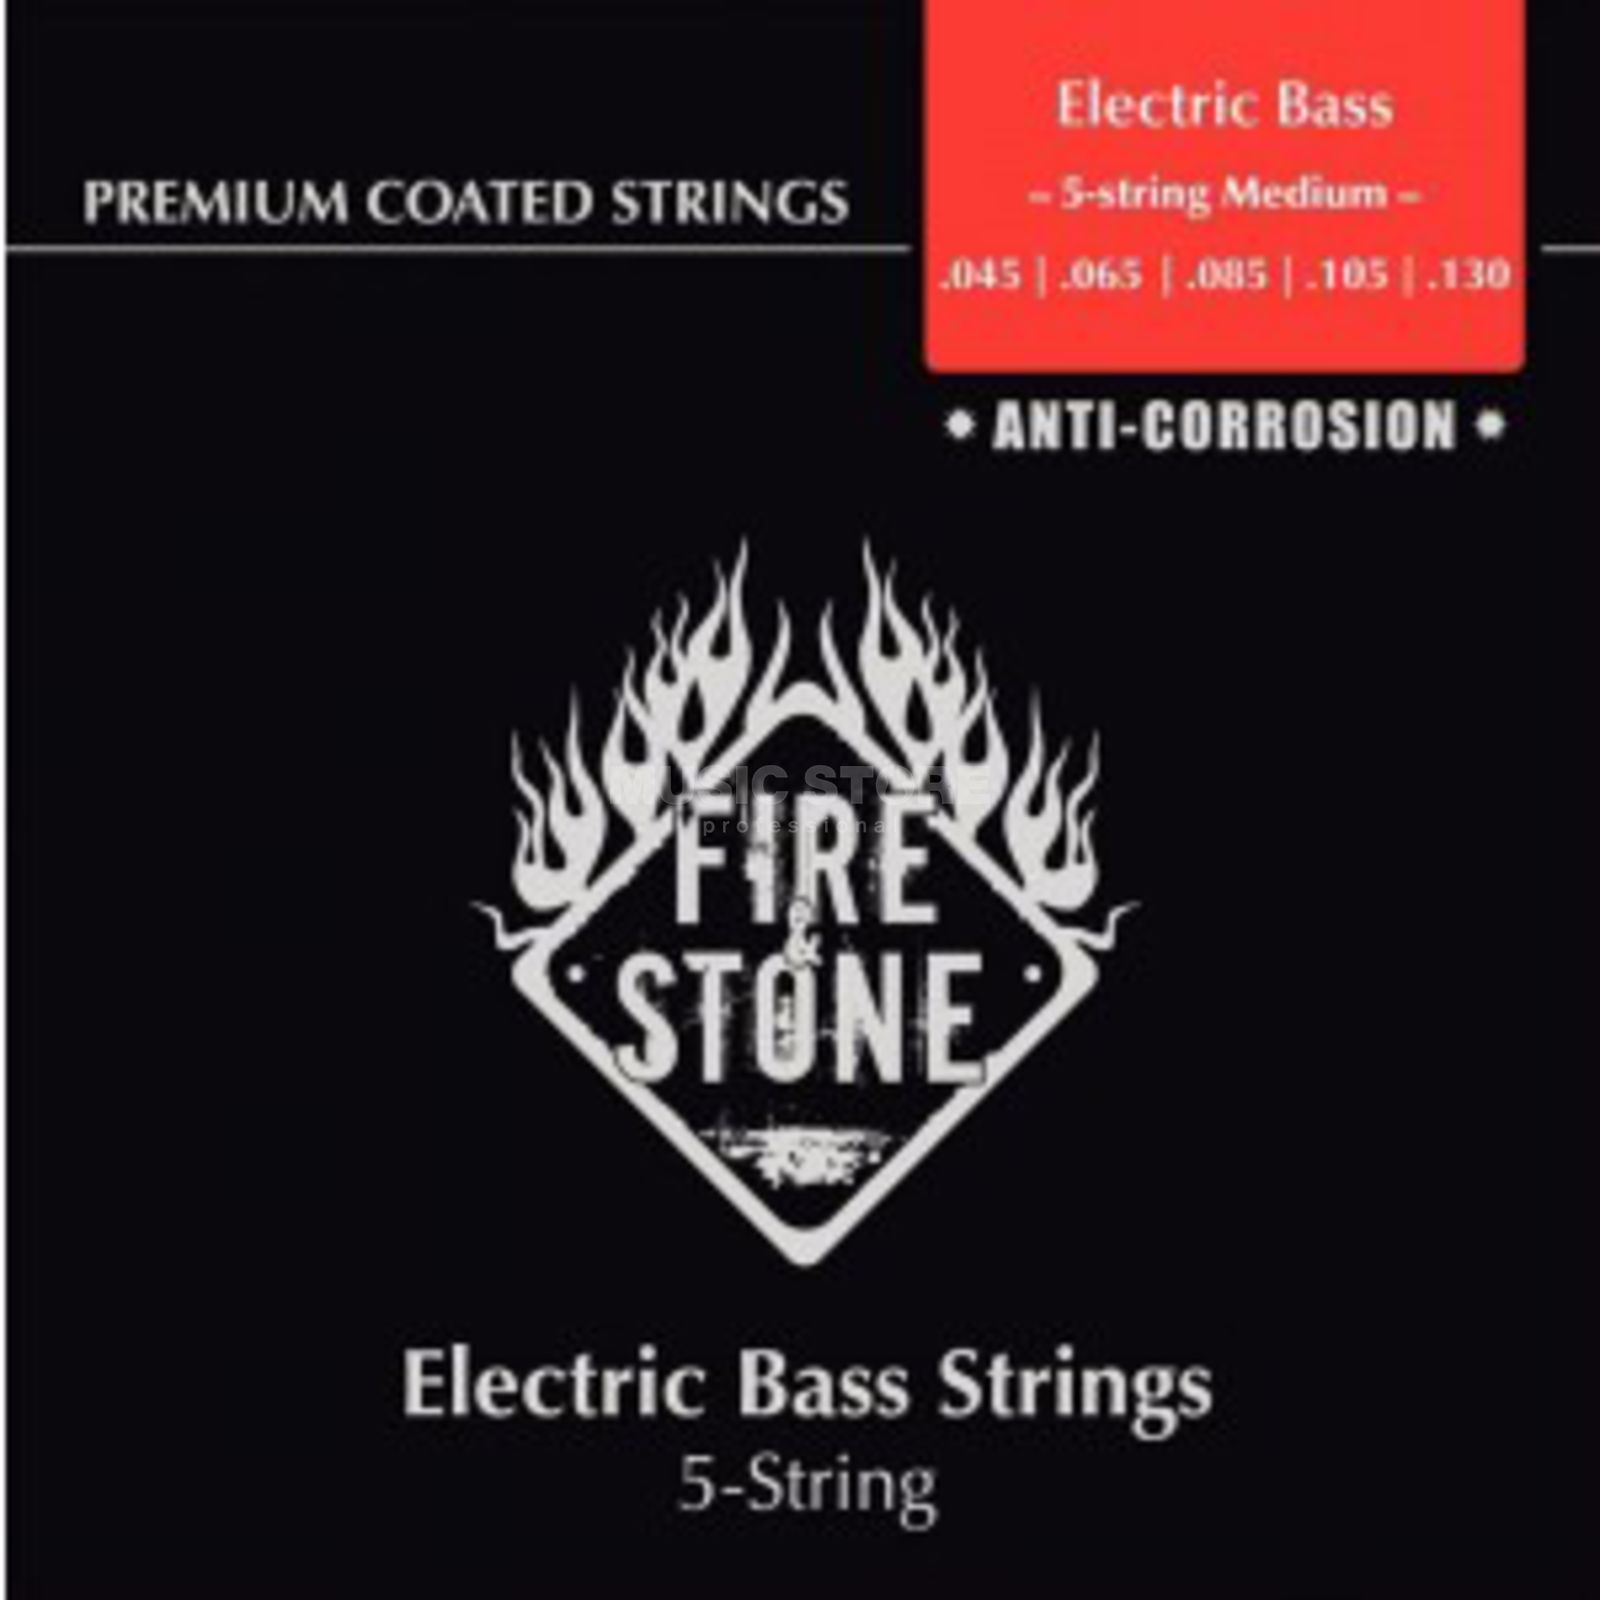 Fire & Stone Bass Strings 45-130 Coated Medium Imagem do produto